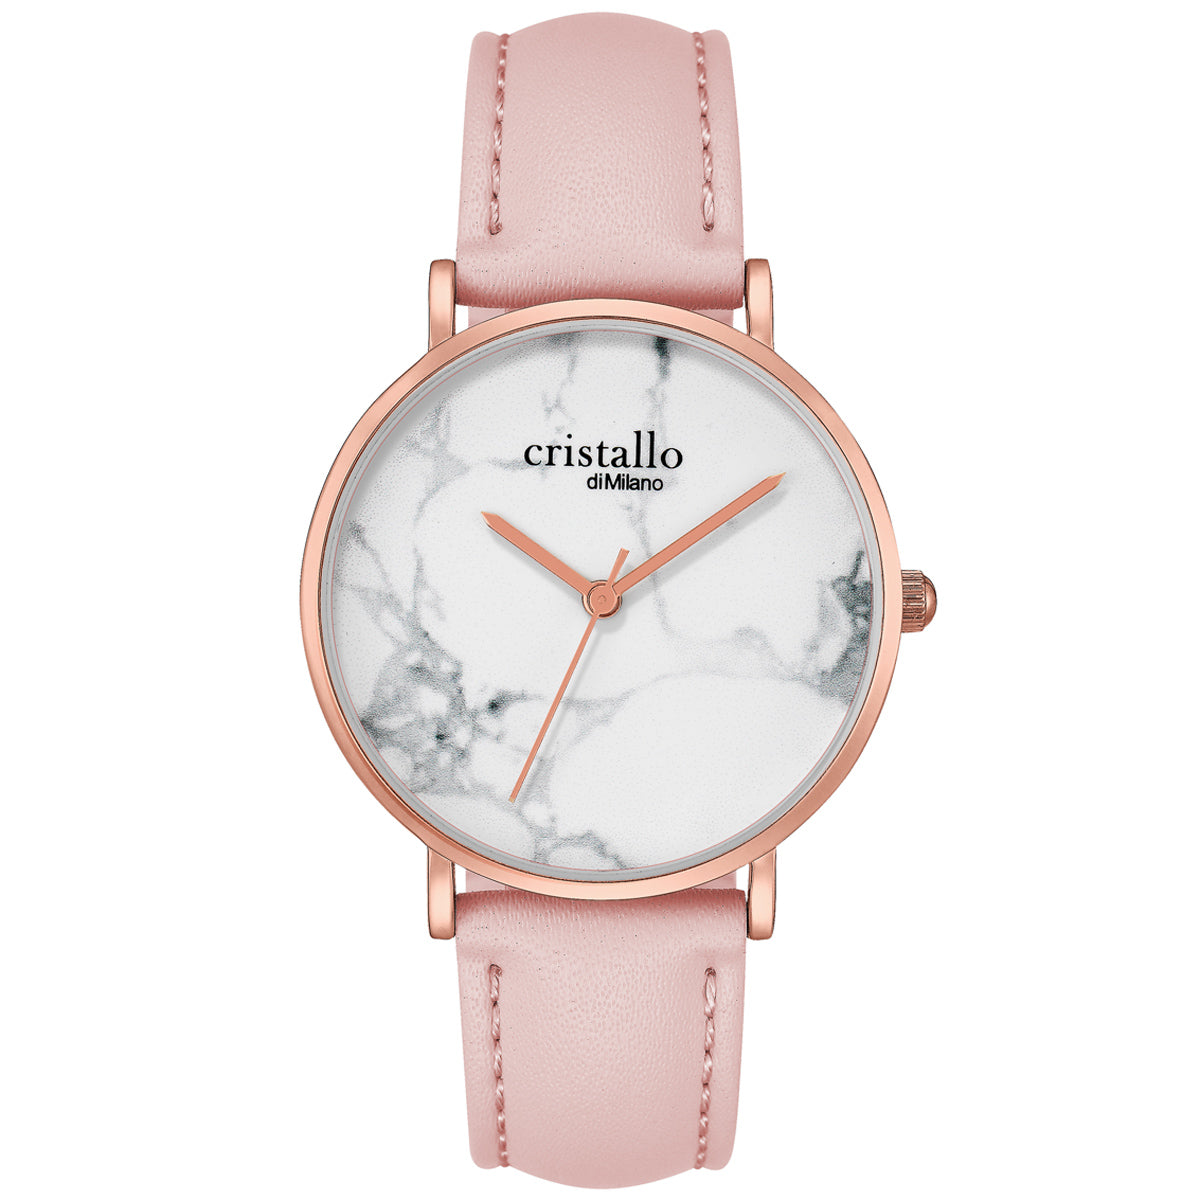 Roche Marble Pink on White in Rose Gold Watch